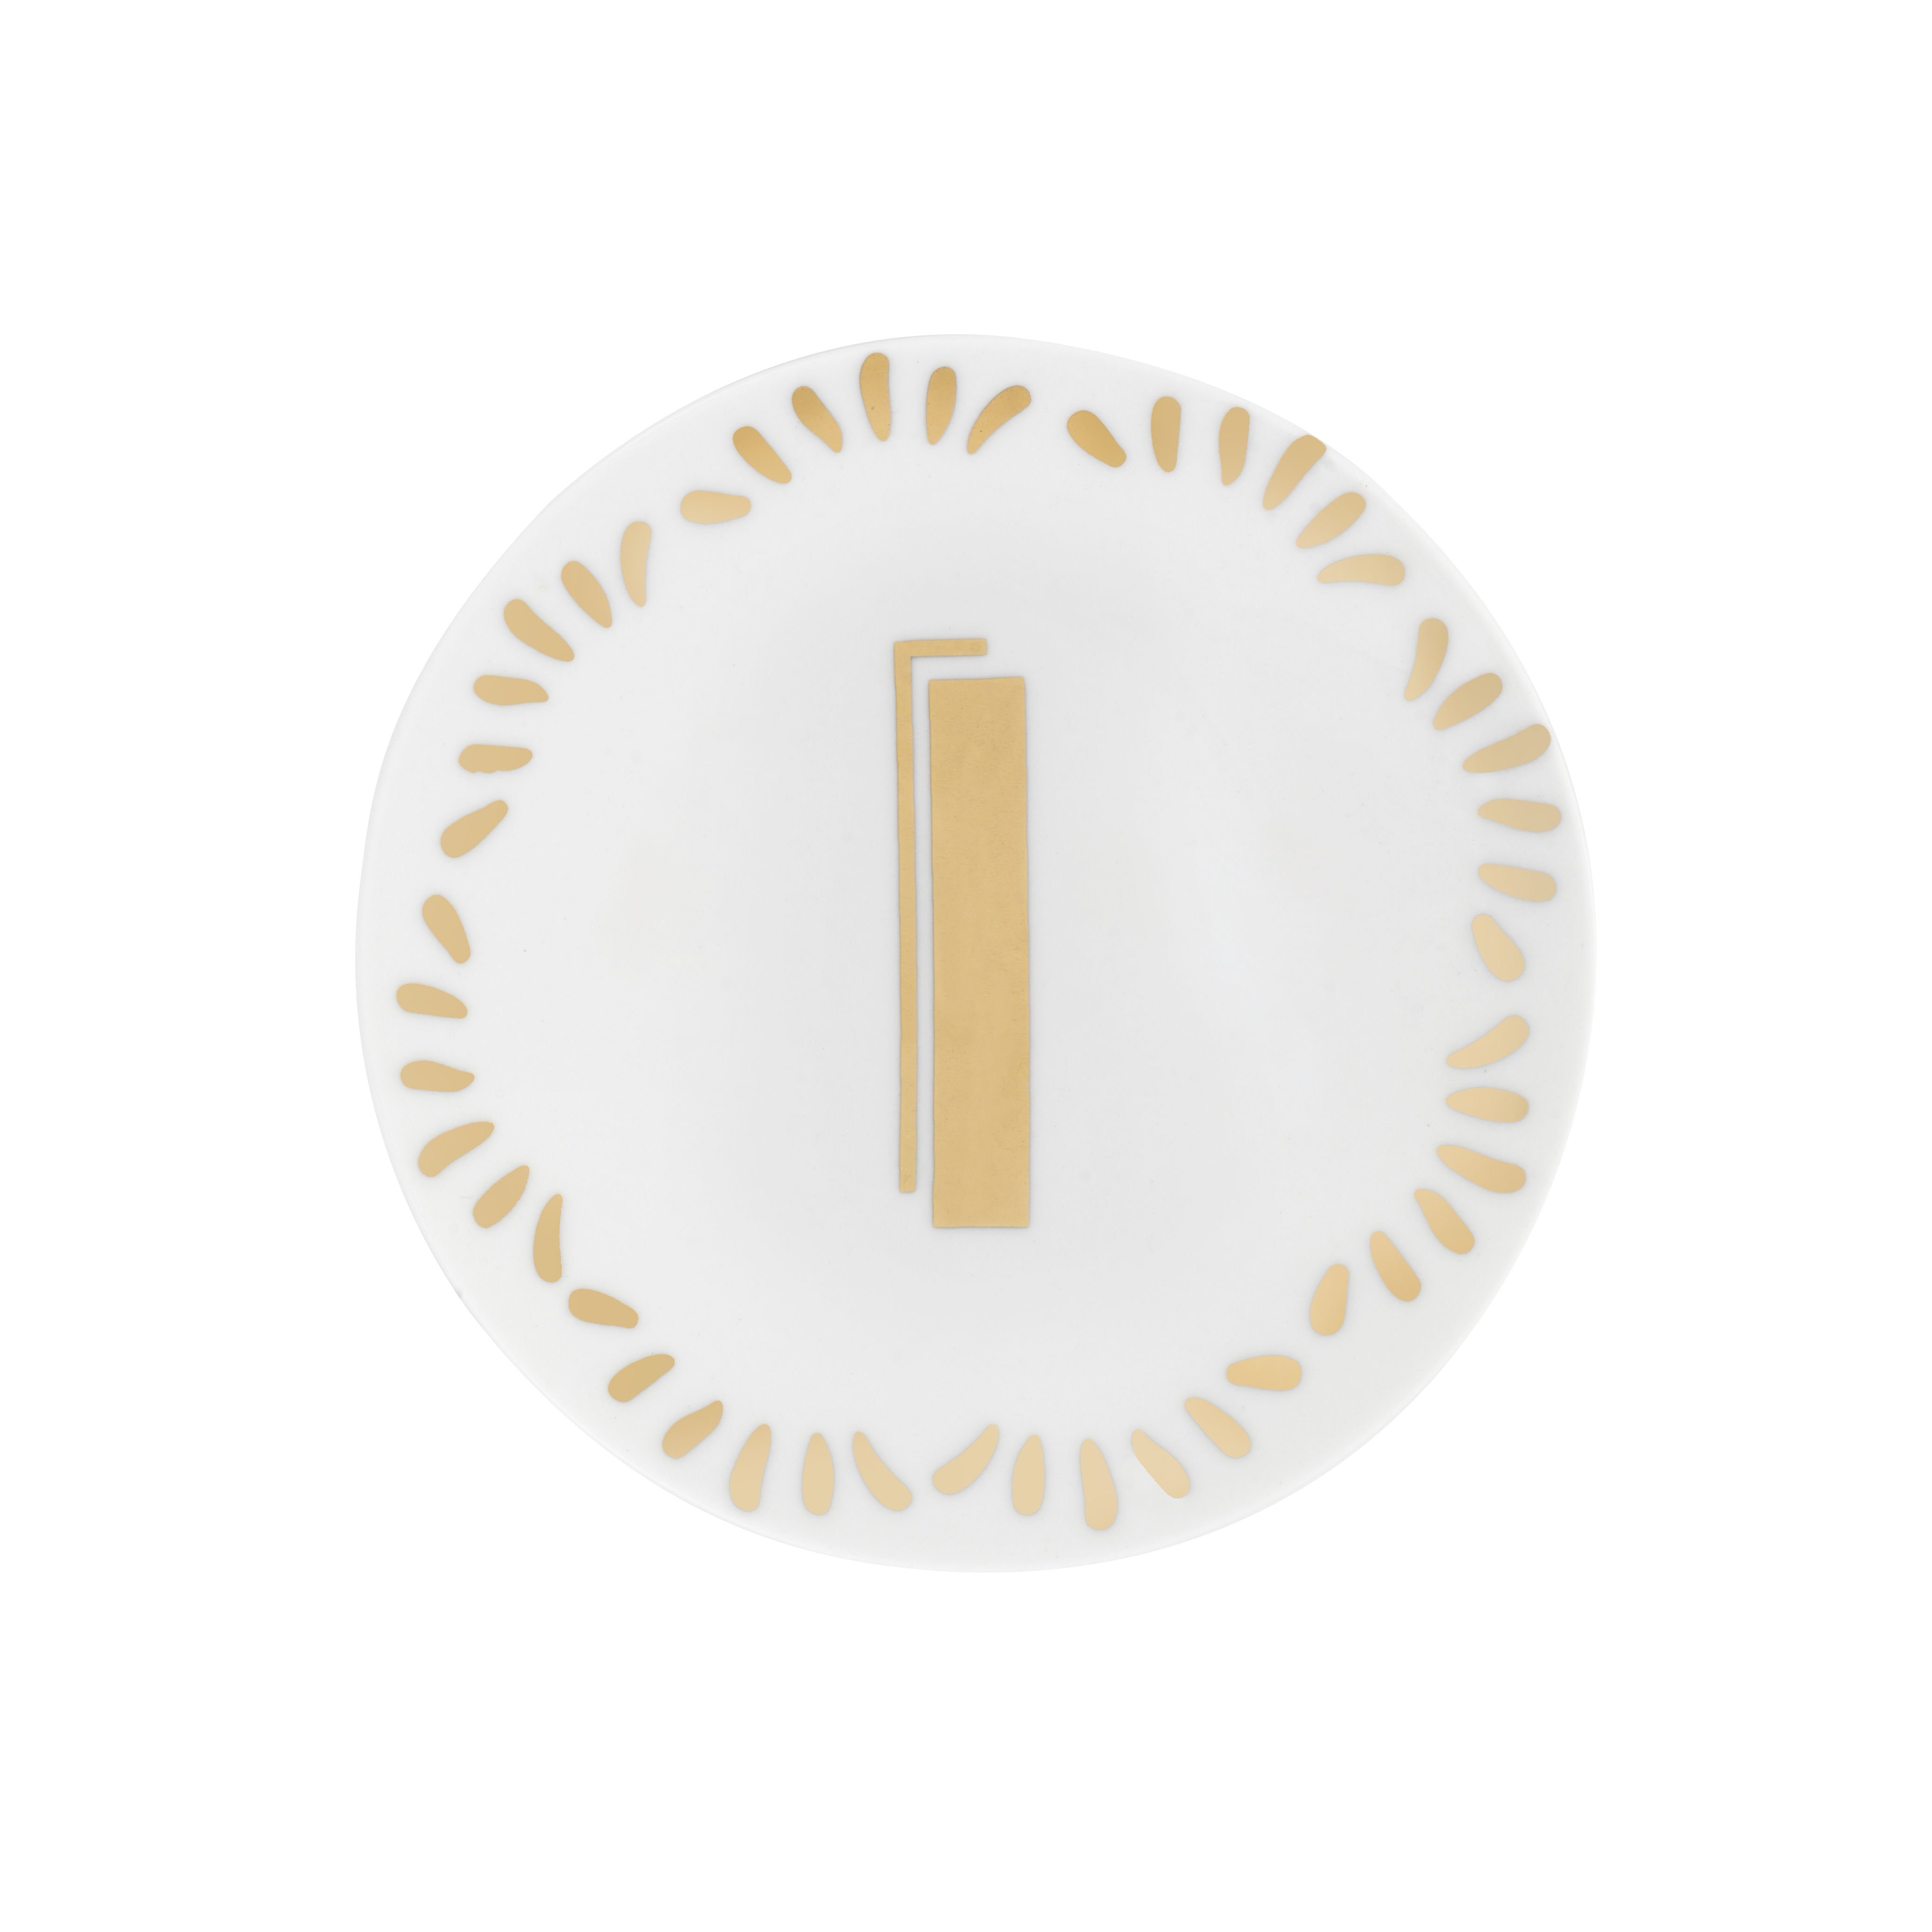 Tableware - Plates - Lettering Petit fours plates - Ø 12 cm / Letter I by Bitossi Home - Letter I / Gold - China